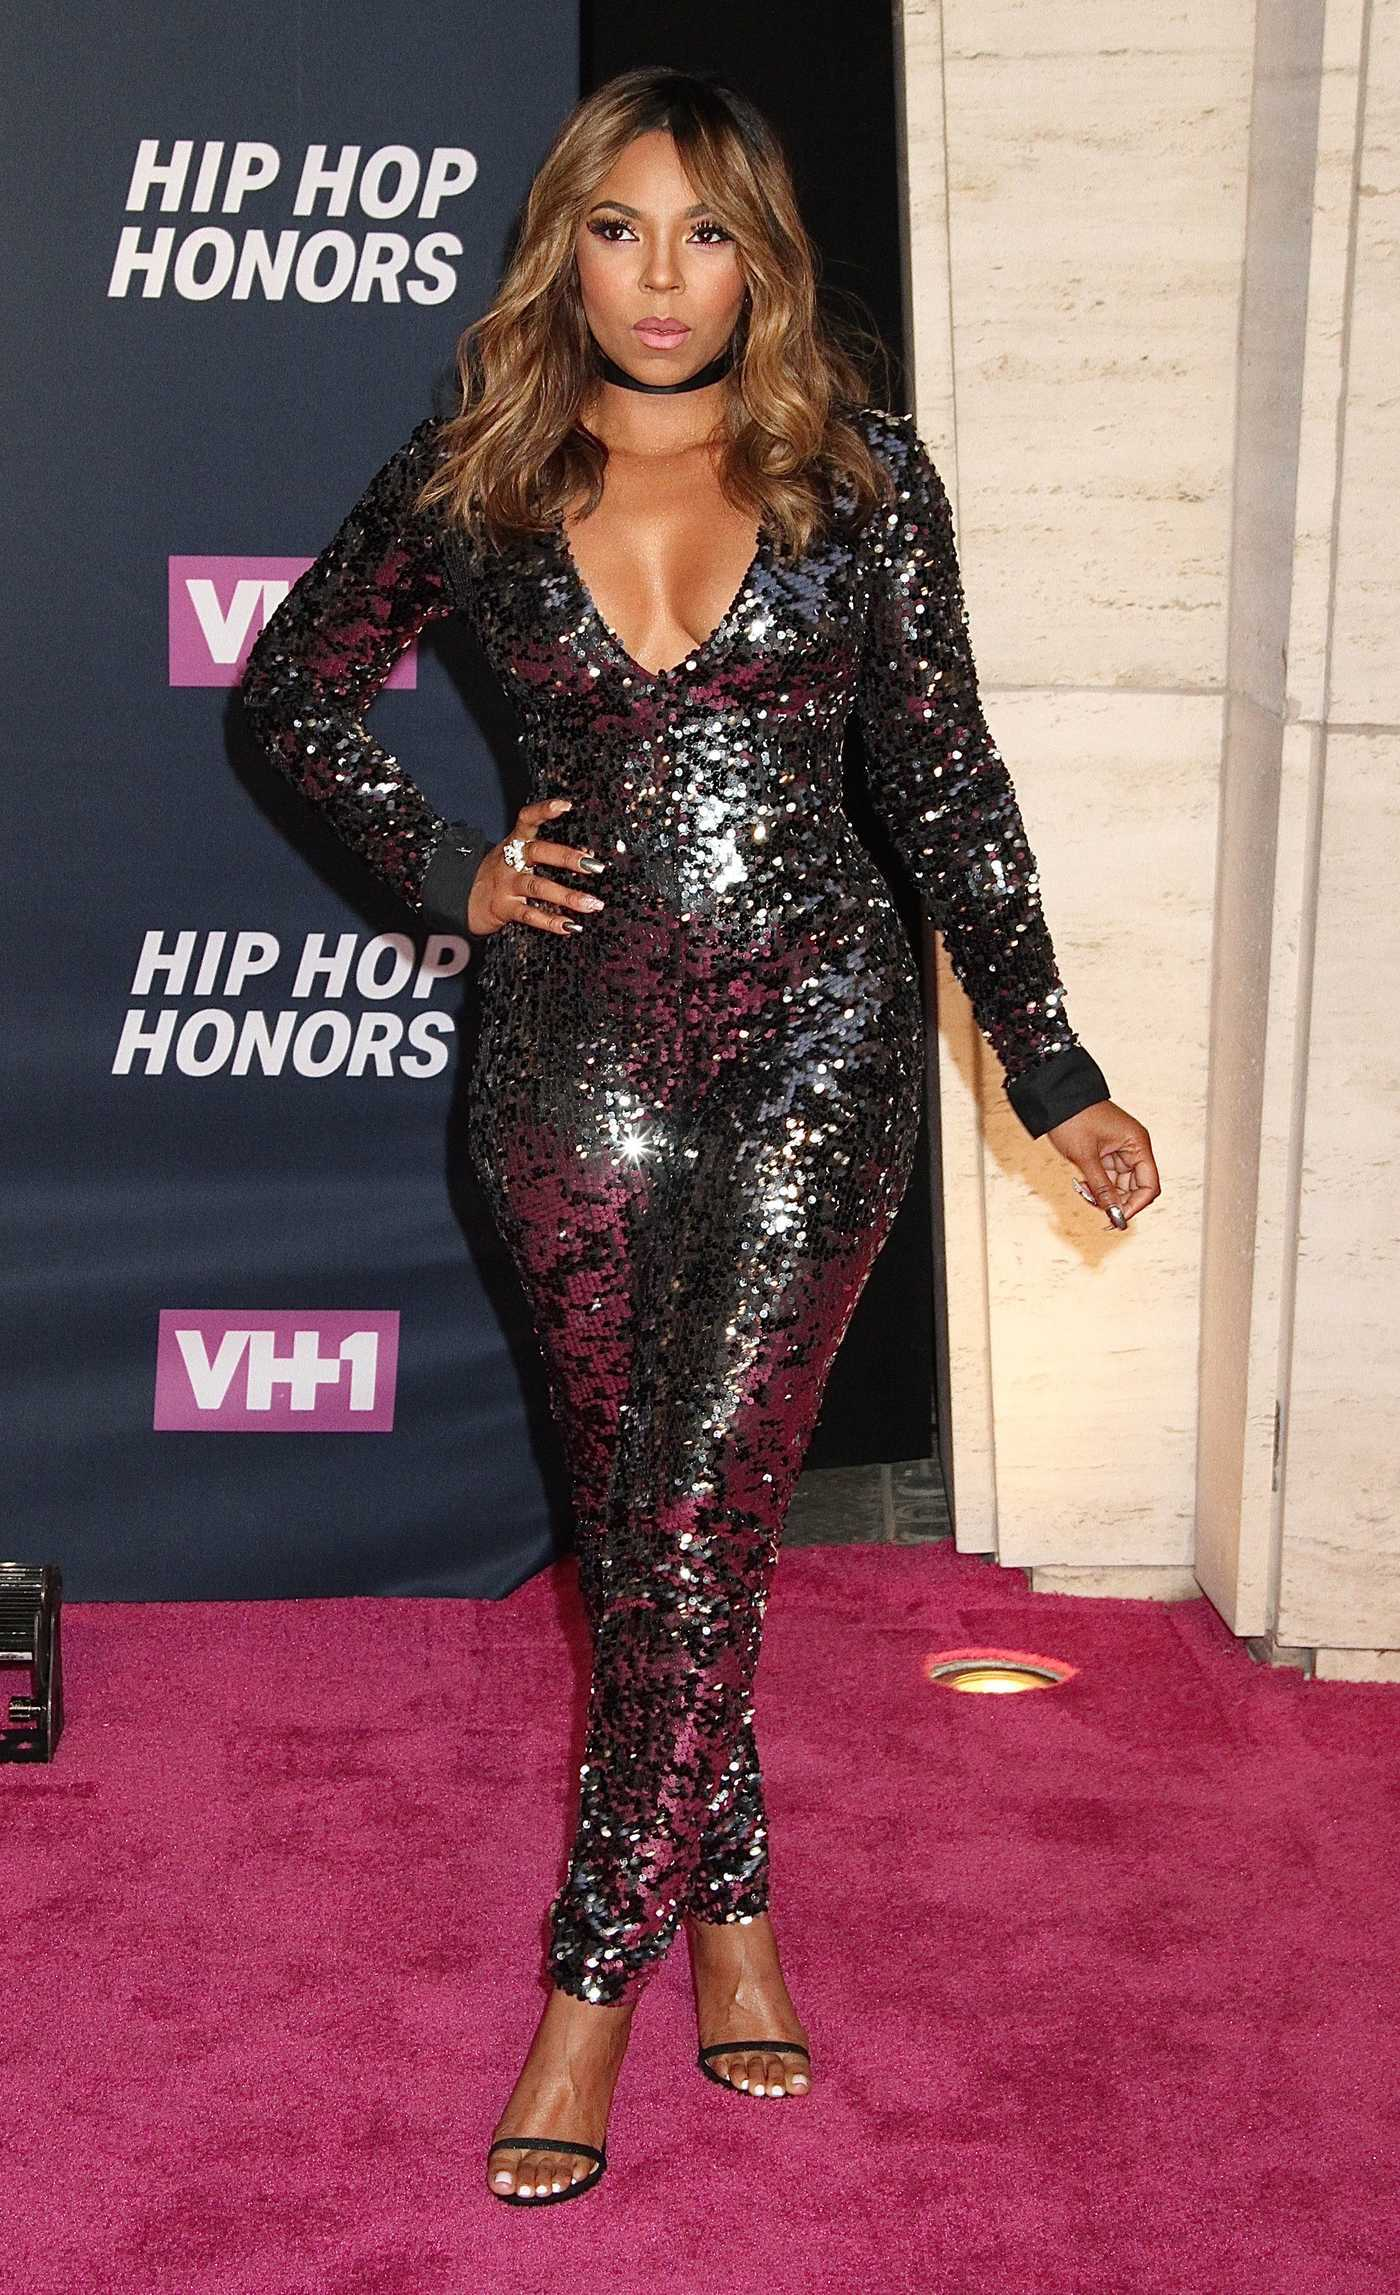 Ashanti at the VH1 Hip Hop Honors in New York City 07/11/2016